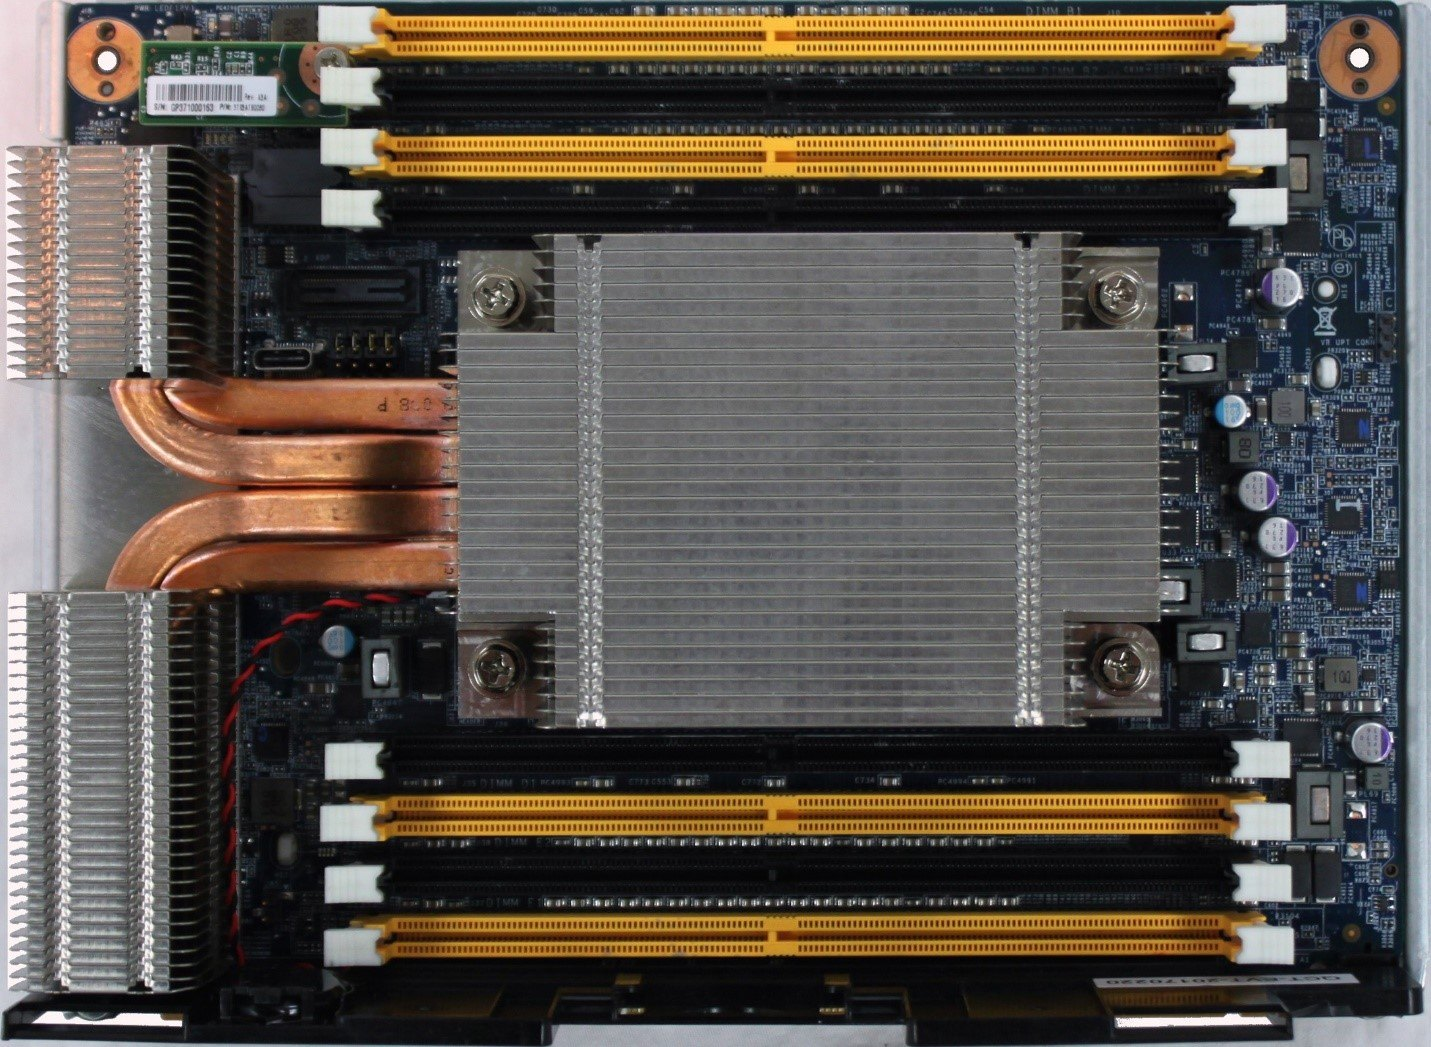 The Twin Lakes memory subsystem implementation includes two DIMMs per channel for a total of eight DIMM sockets.